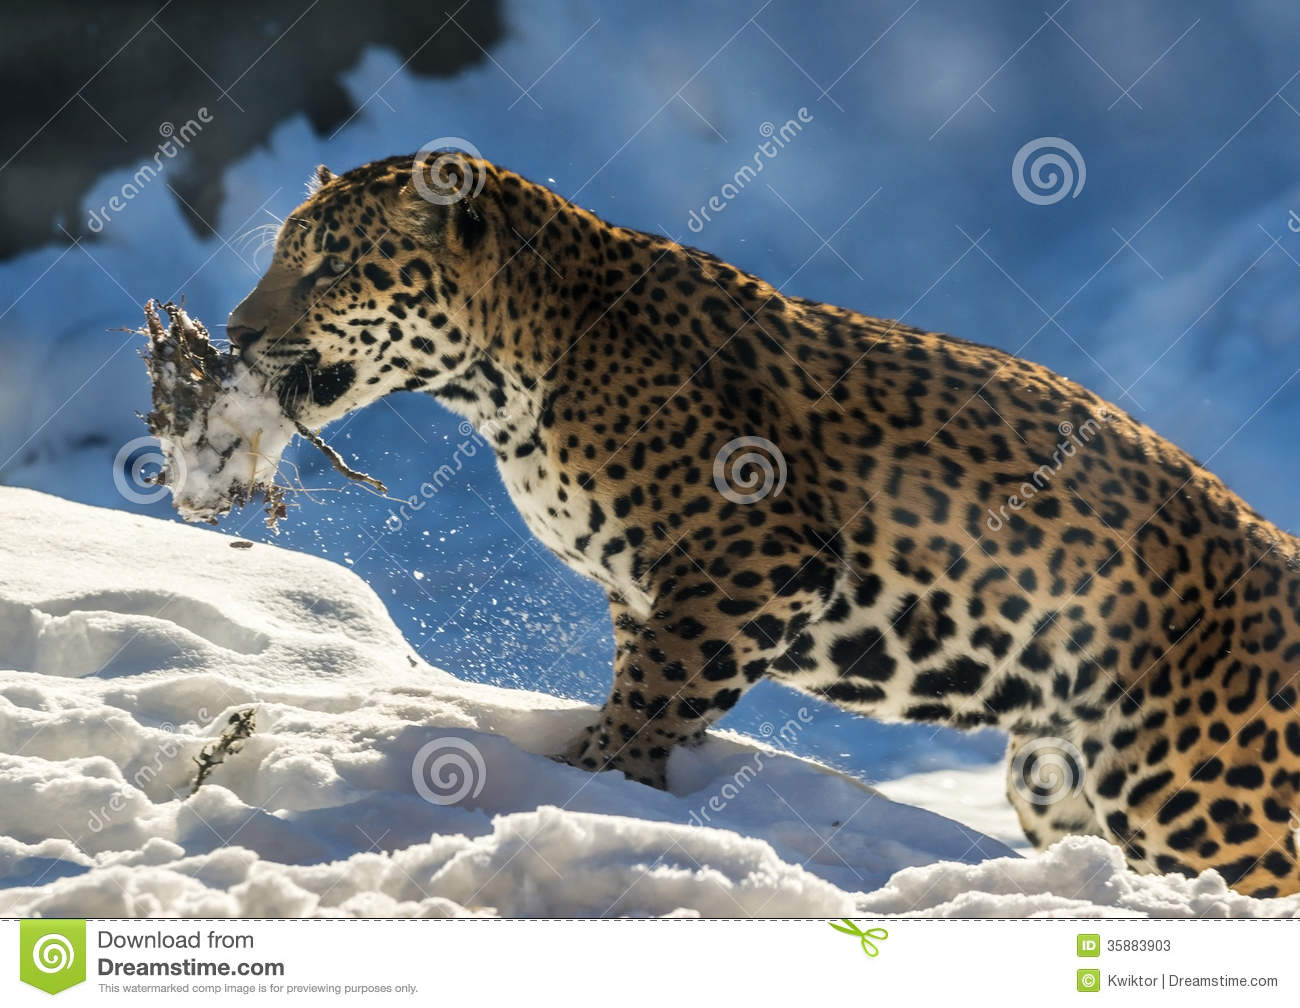 Side view of snow leopard in winter snow with caught animal in mouth.